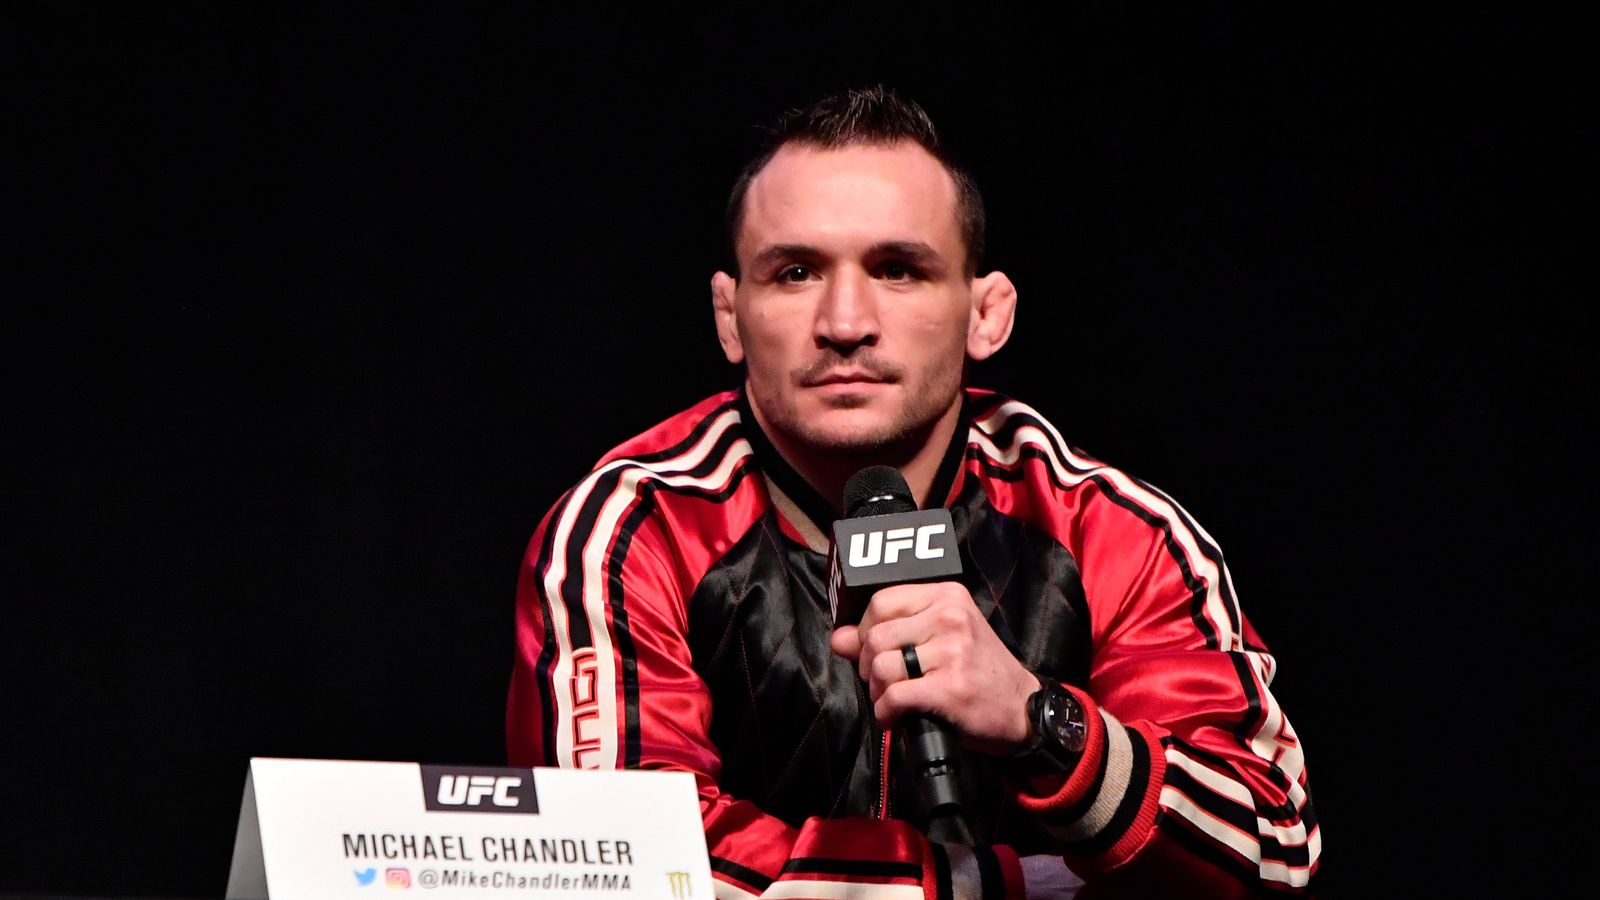 Live: UFC 262 press conference video feat. Charles Oliveira, Michael Chandler